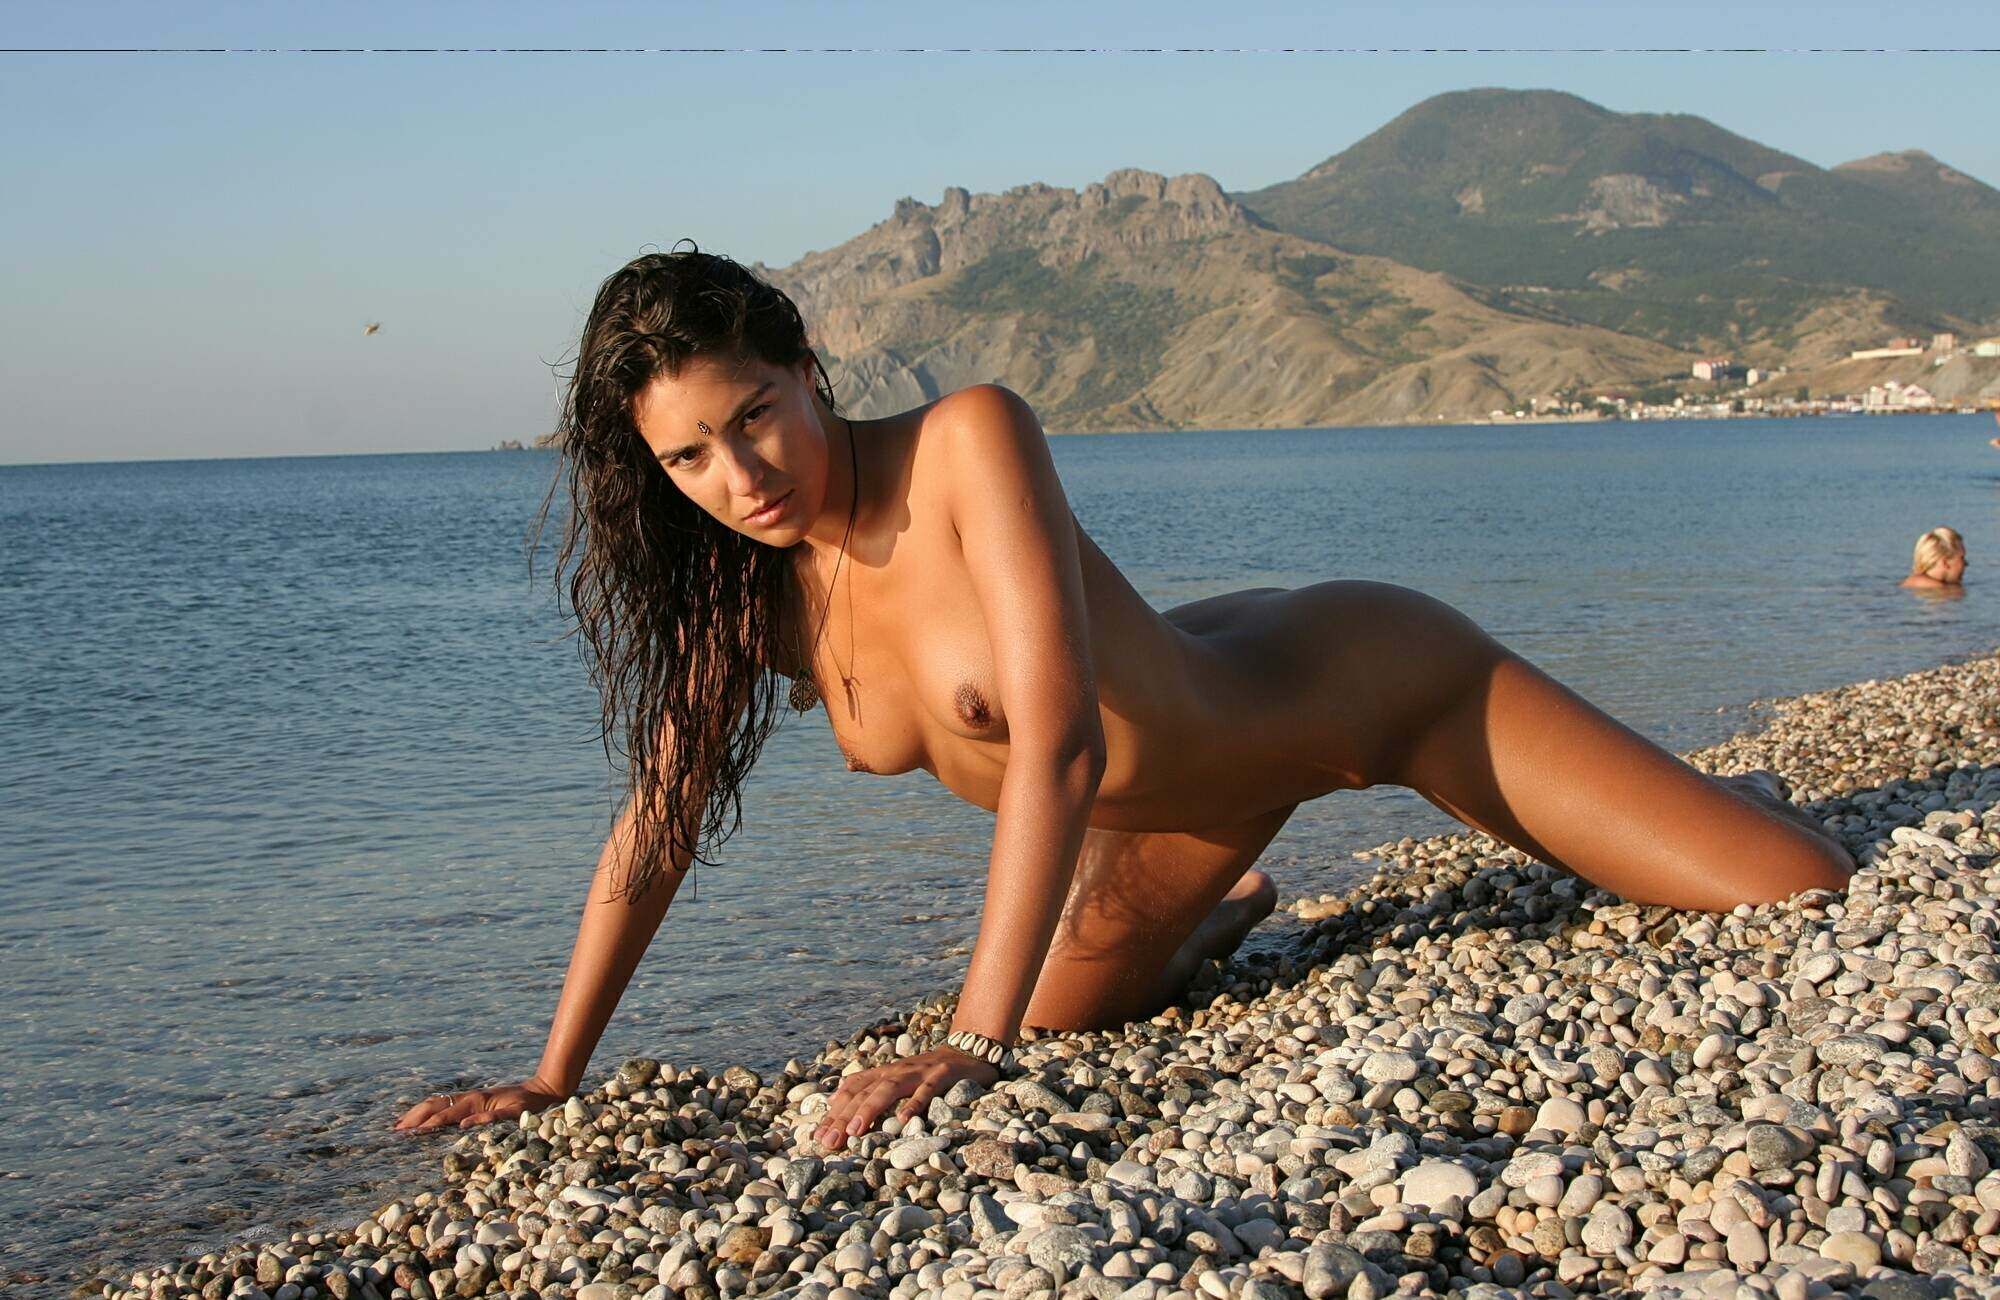 koktebel nudist beach 17 best images about likings on Pinterest   Naturist family, Sexy and  Donald o'connor